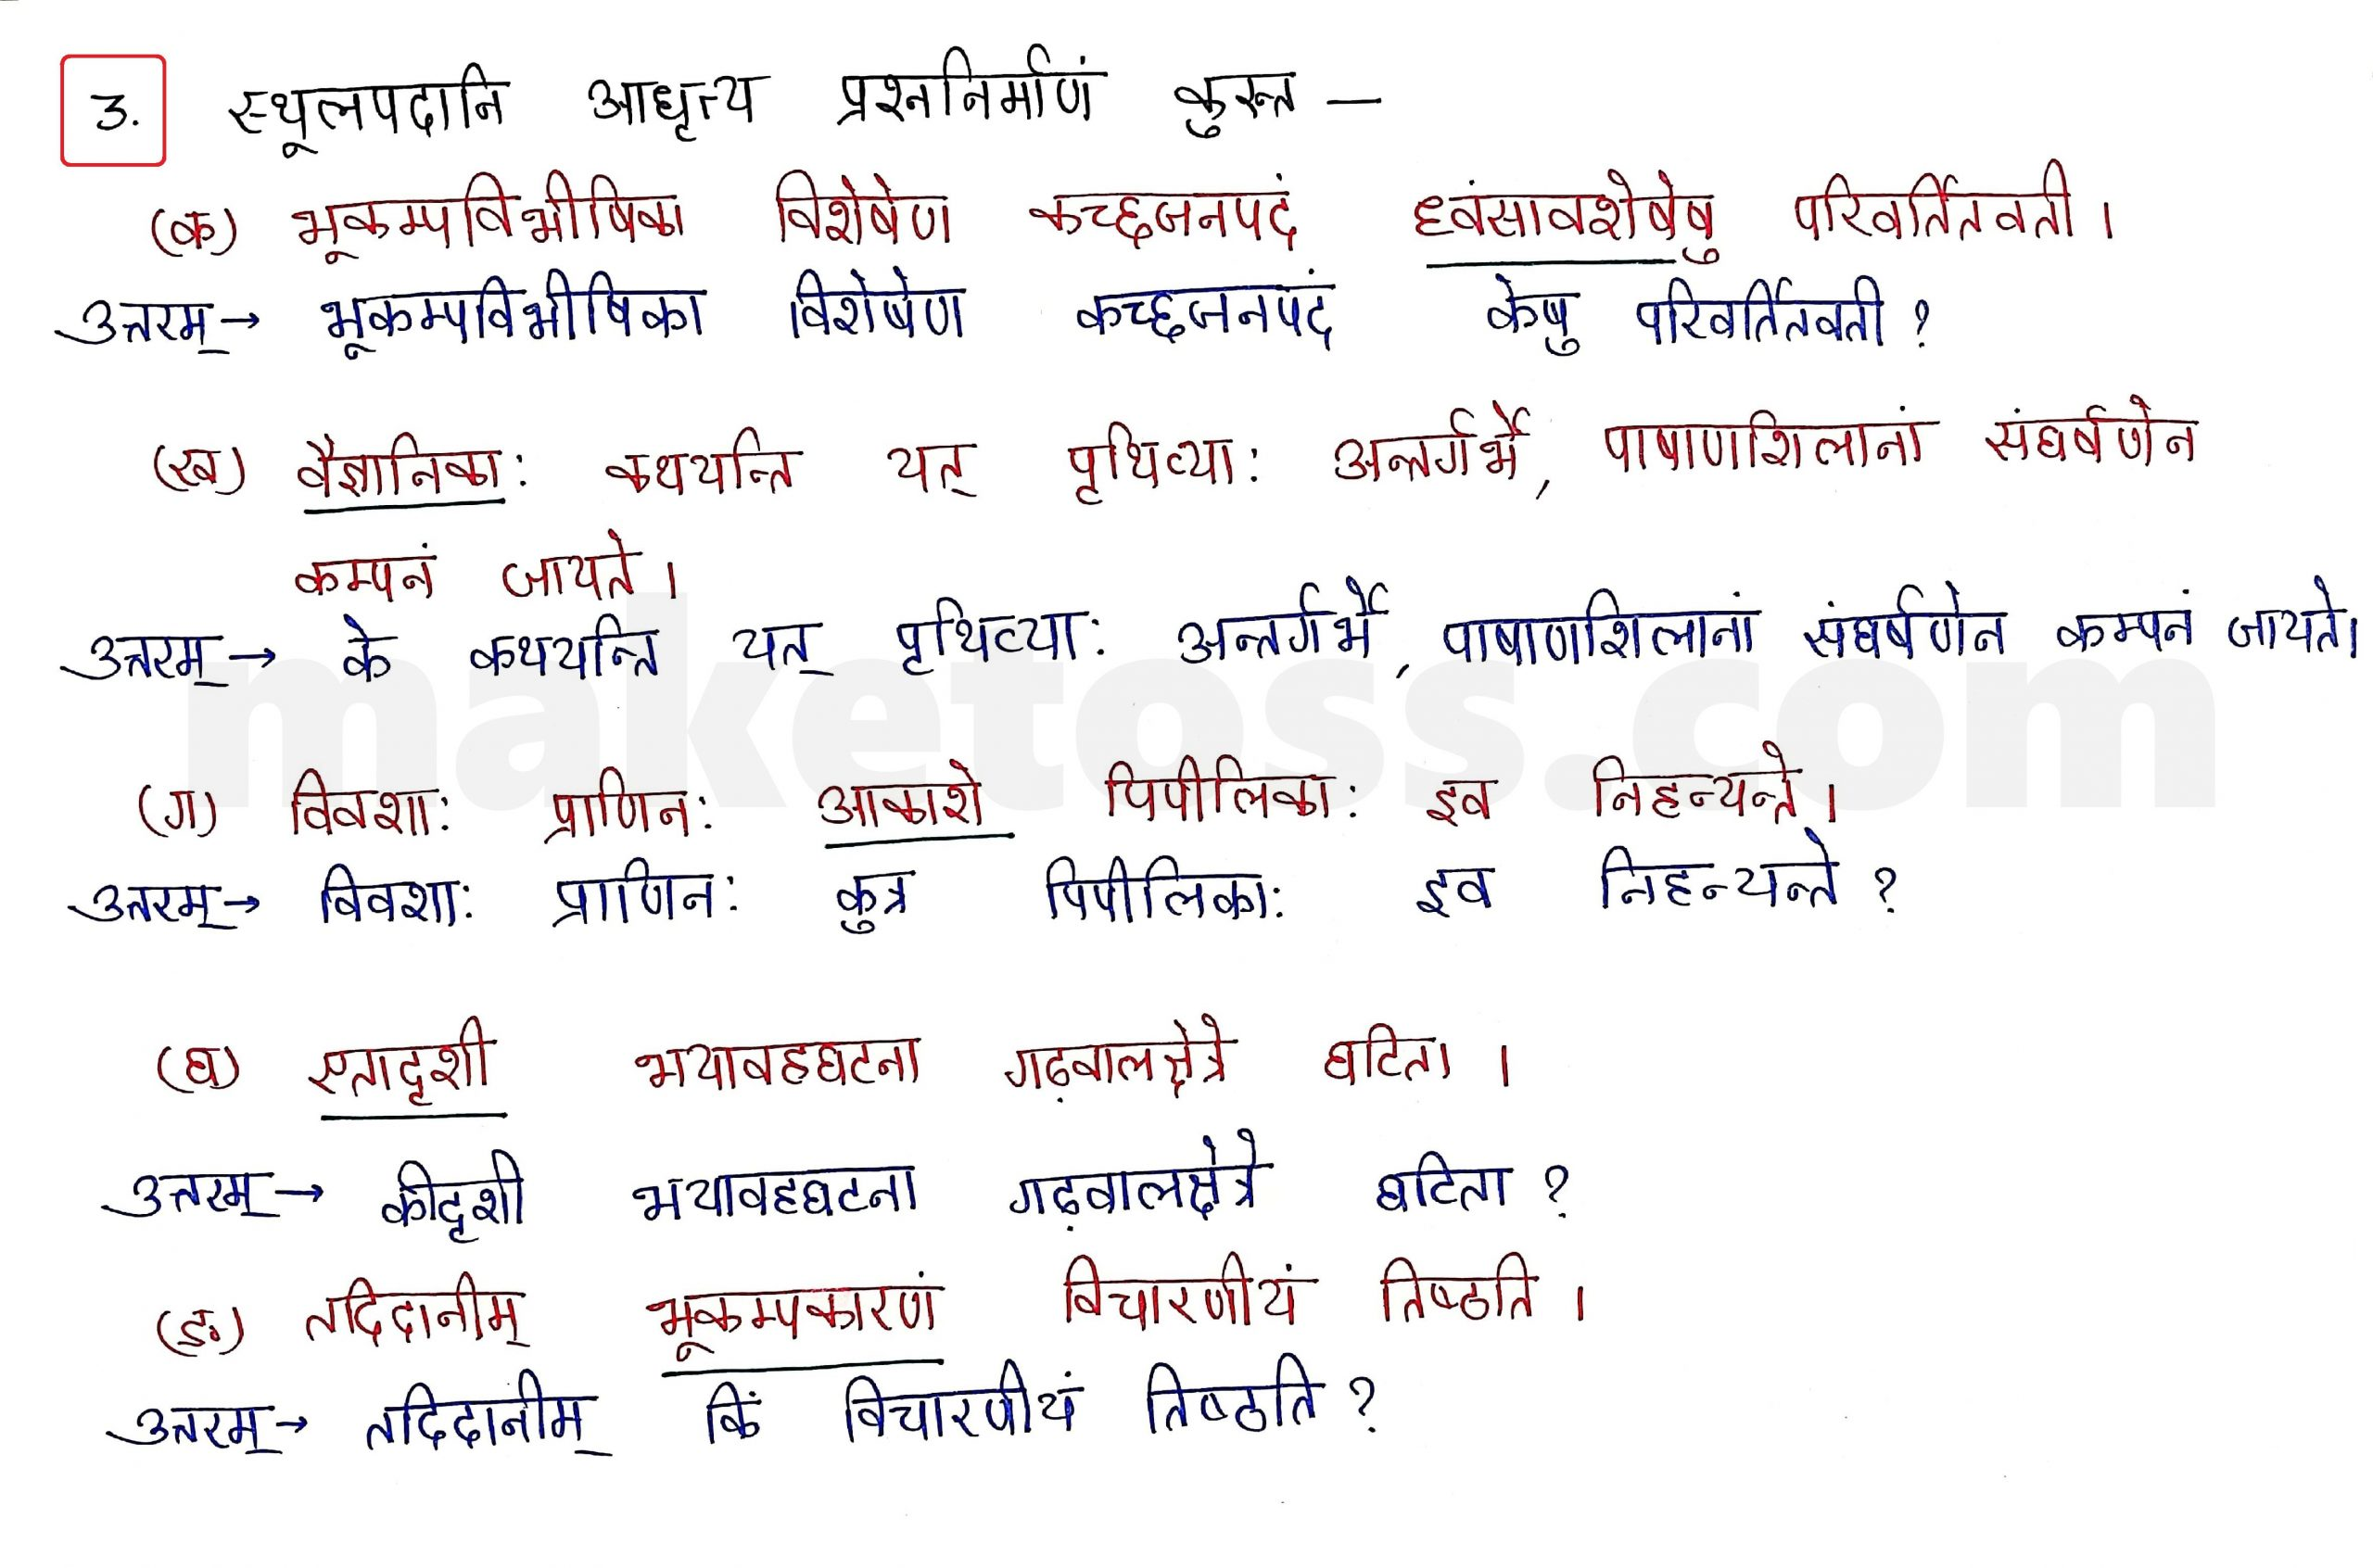 Sanskrit Class 10 - Chapter 10 - भूकंपविभीषिका Question 3 with Answer